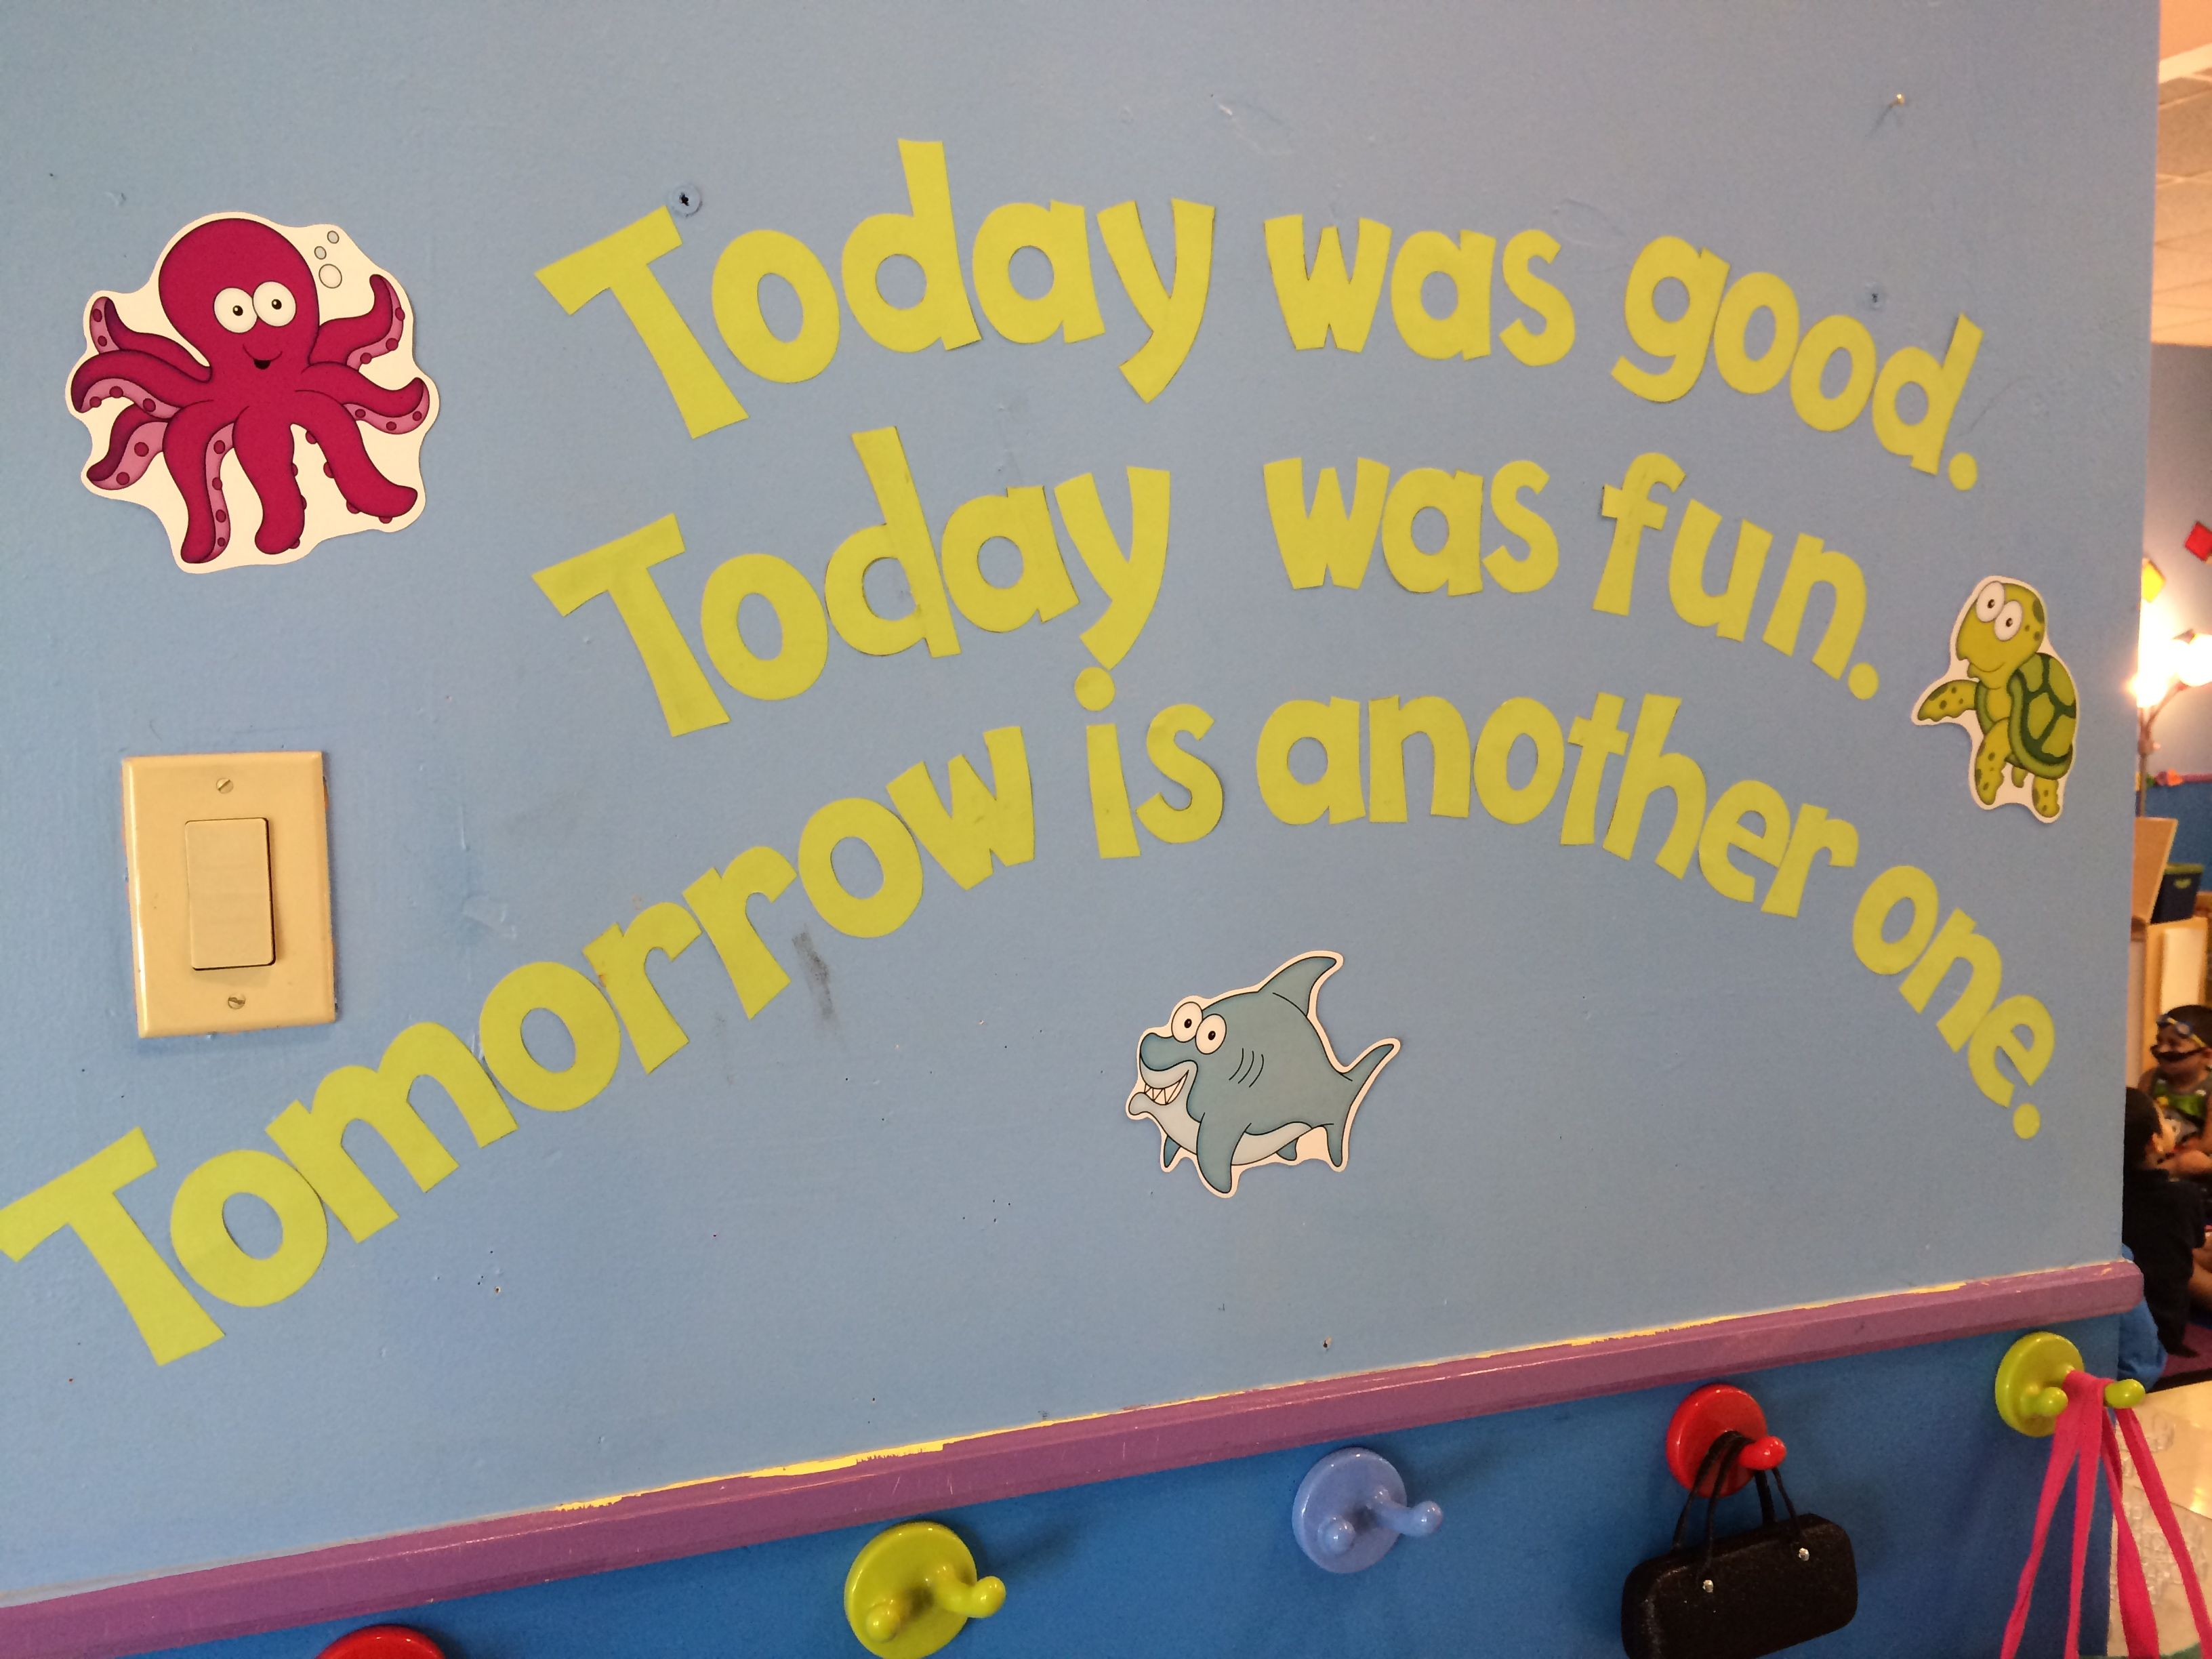 Dr. Seuss quote on wall